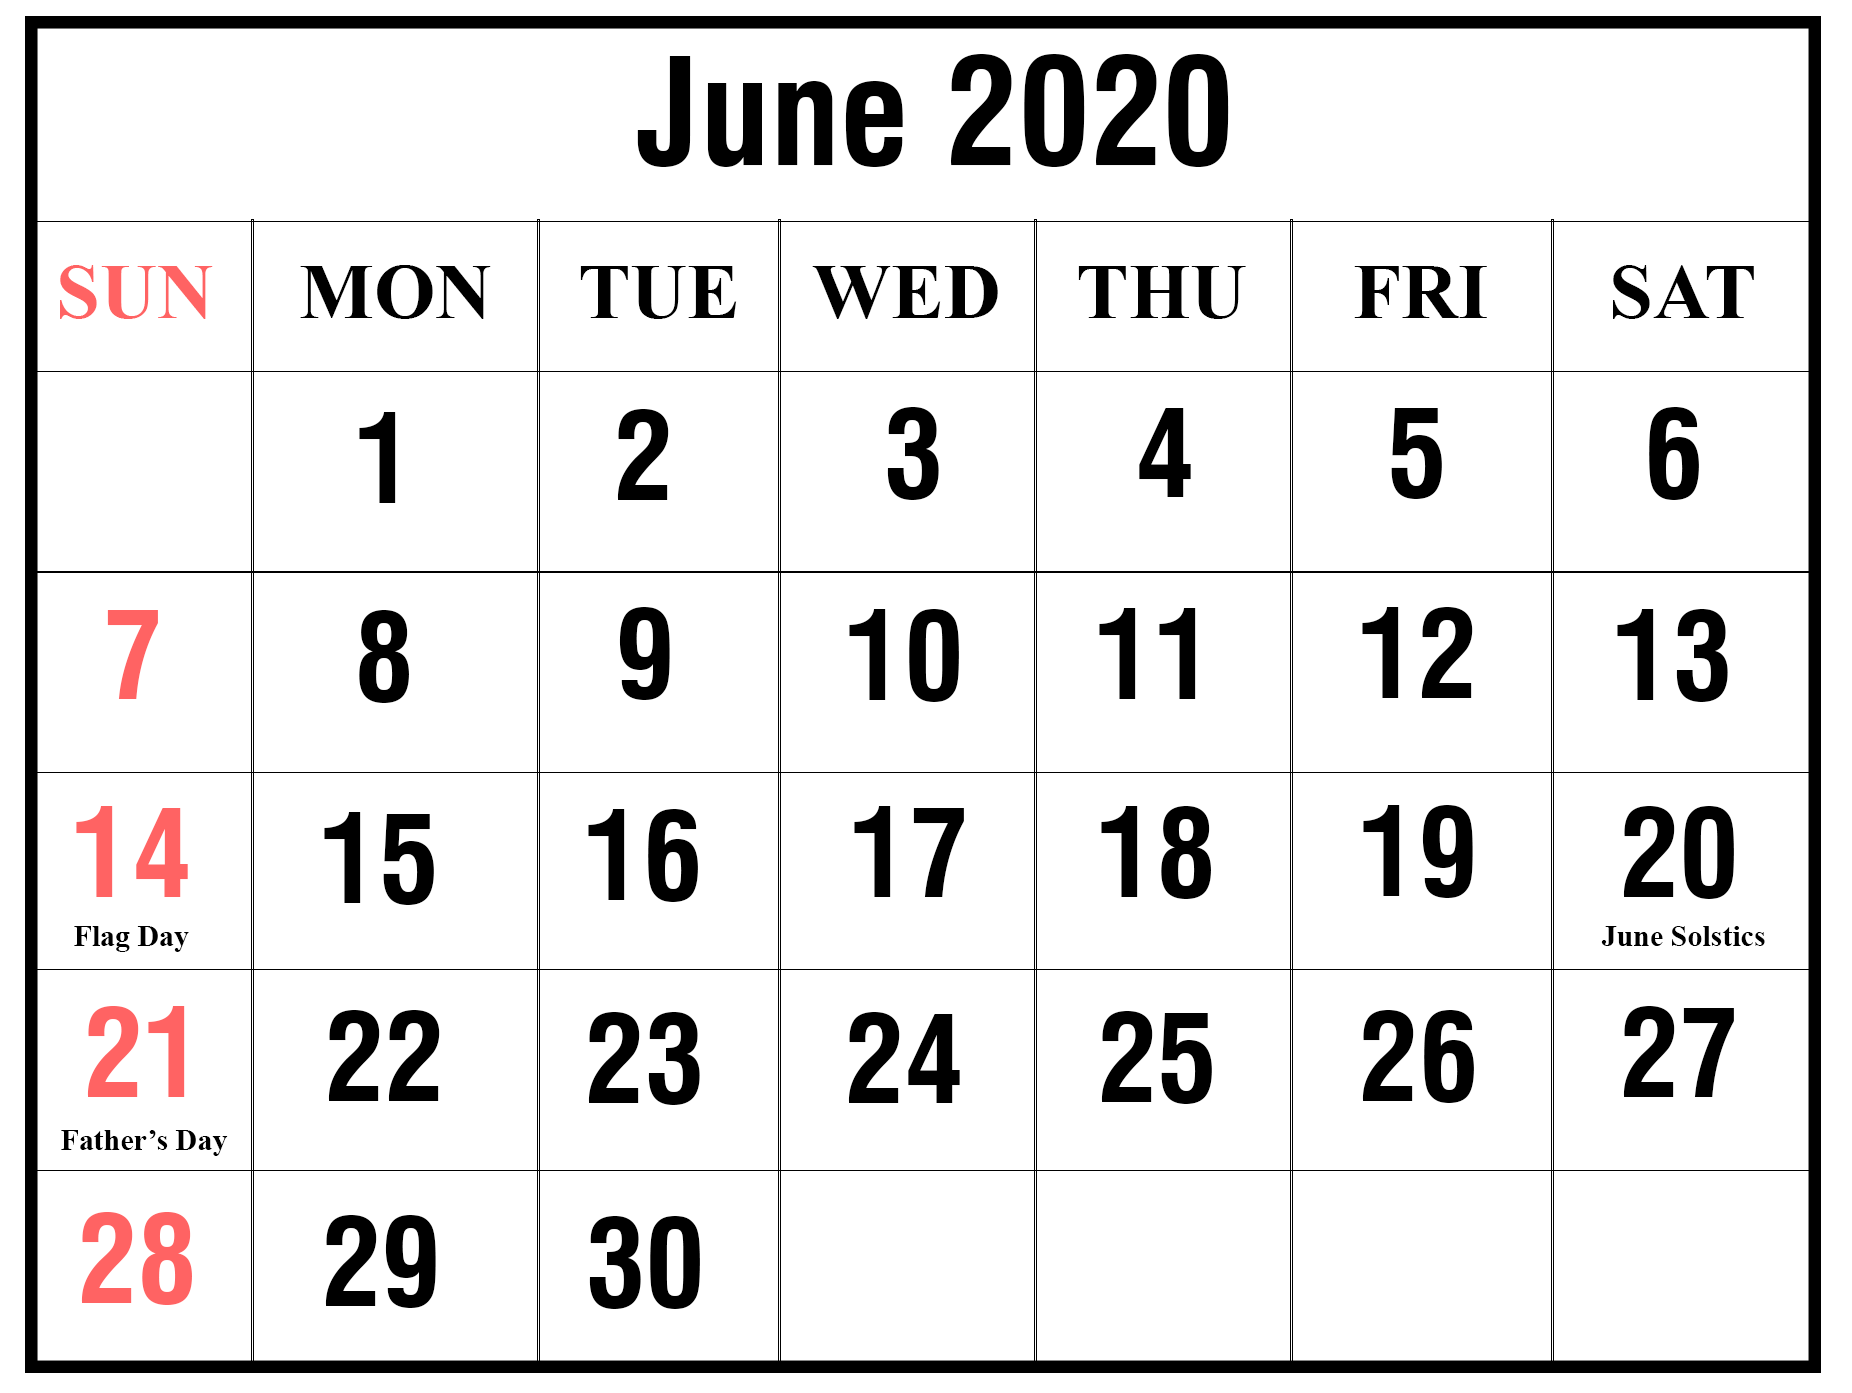 What Happened in June, 2020?